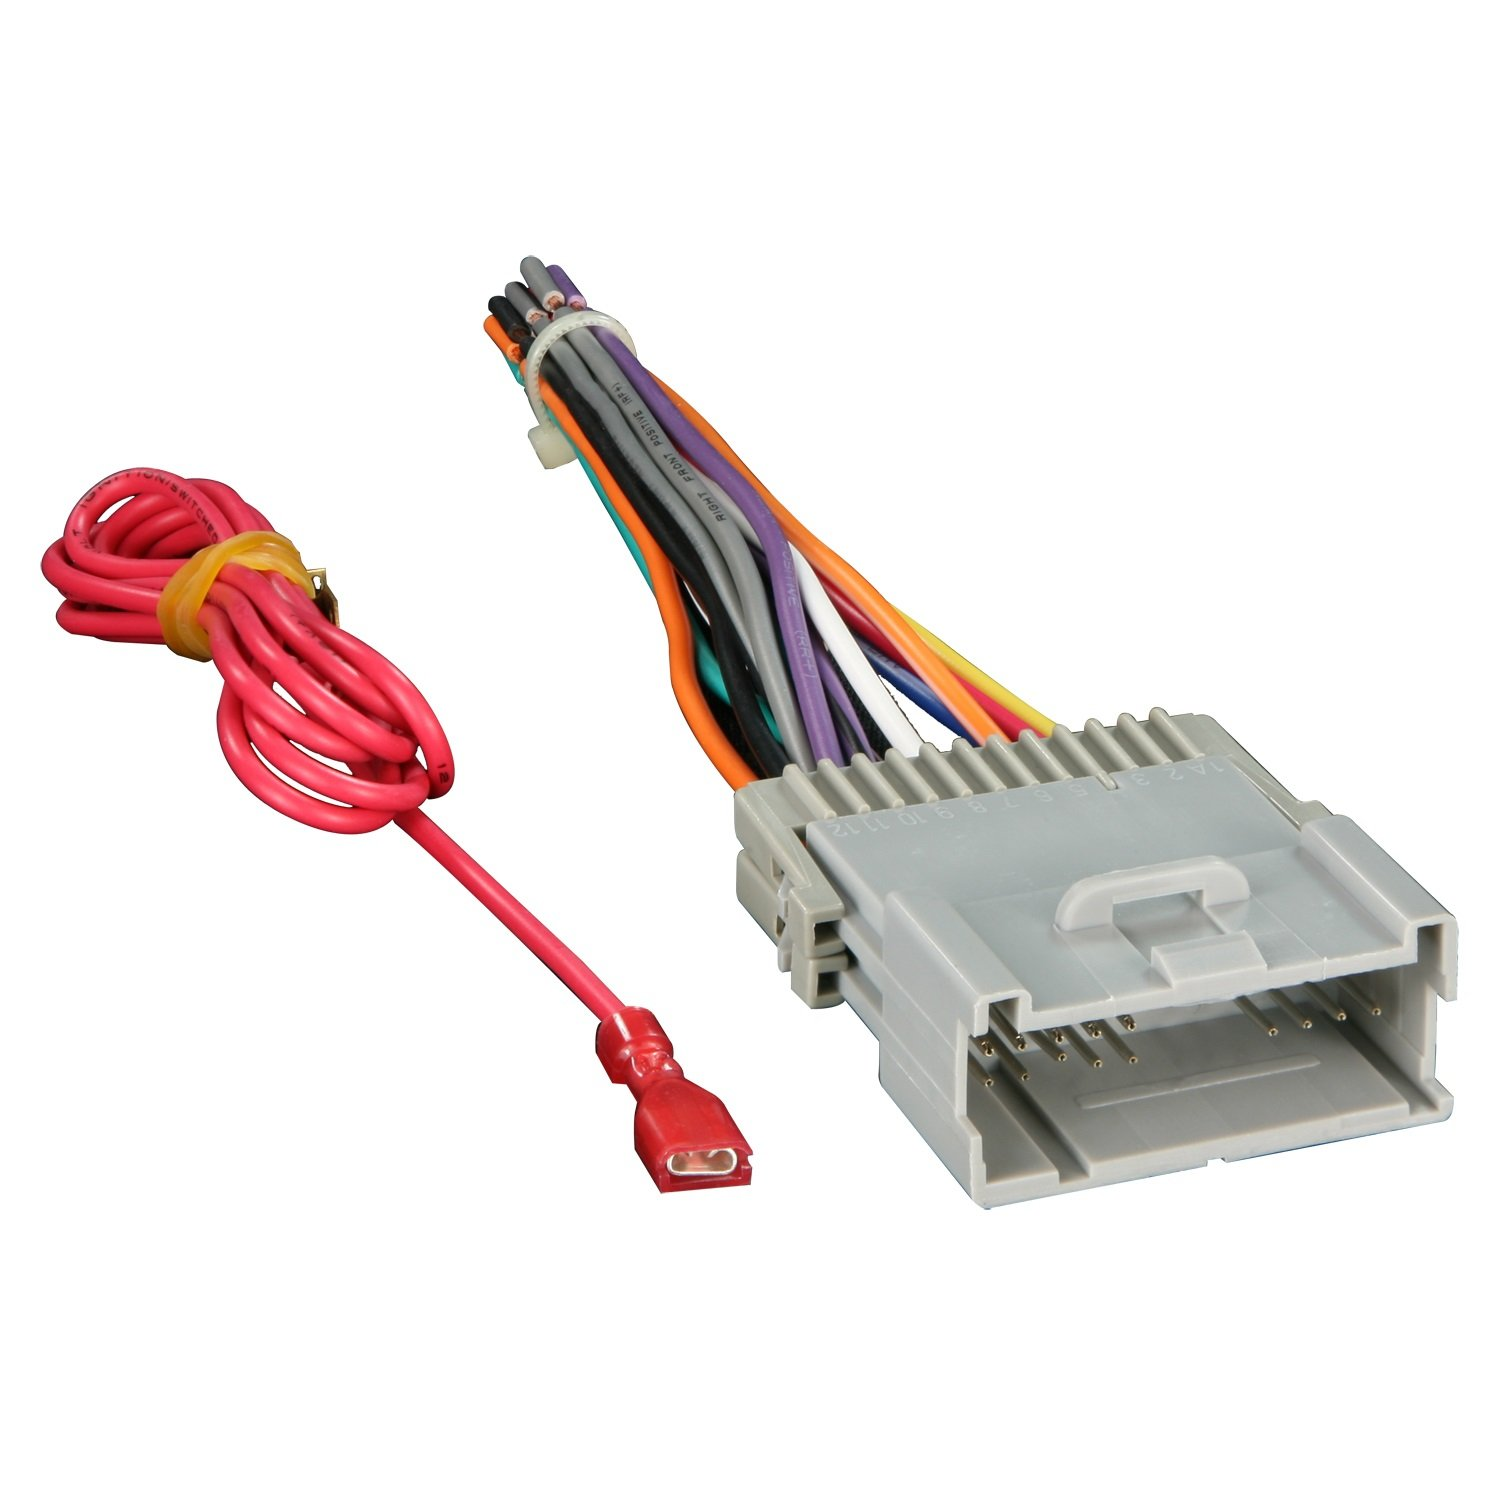 61eewxp9orL._SL1500_ amazon com metra 70 2003 radio wiring harness for gm 98 08 what wiring harness do i need for my car at edmiracle.co